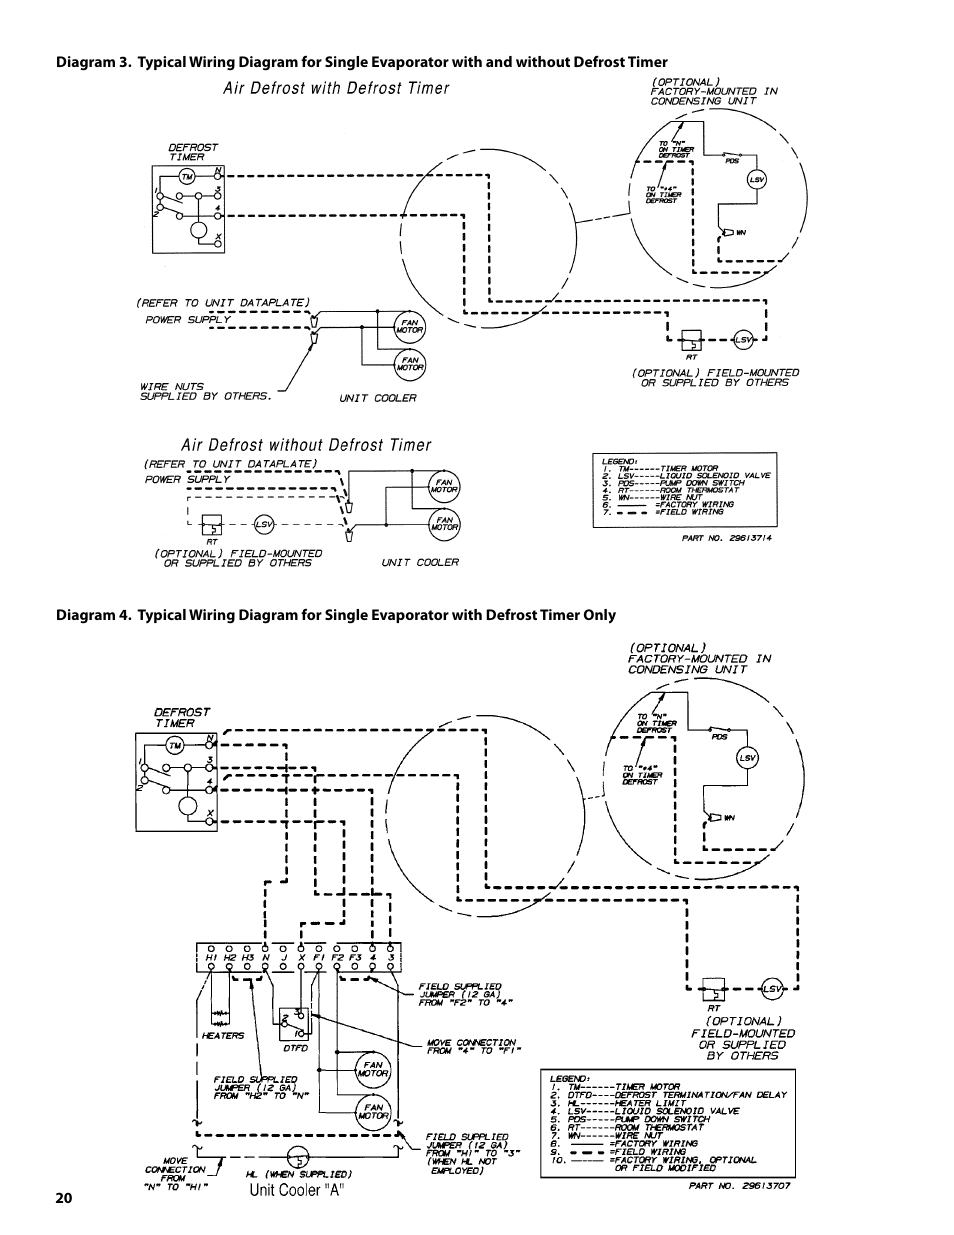 hight resolution of in model wiring walk diagram cooler bohn bht030h2b wiring diagram bohn walk in freezer wiring diagram bohn walk in freezer wiring diagram